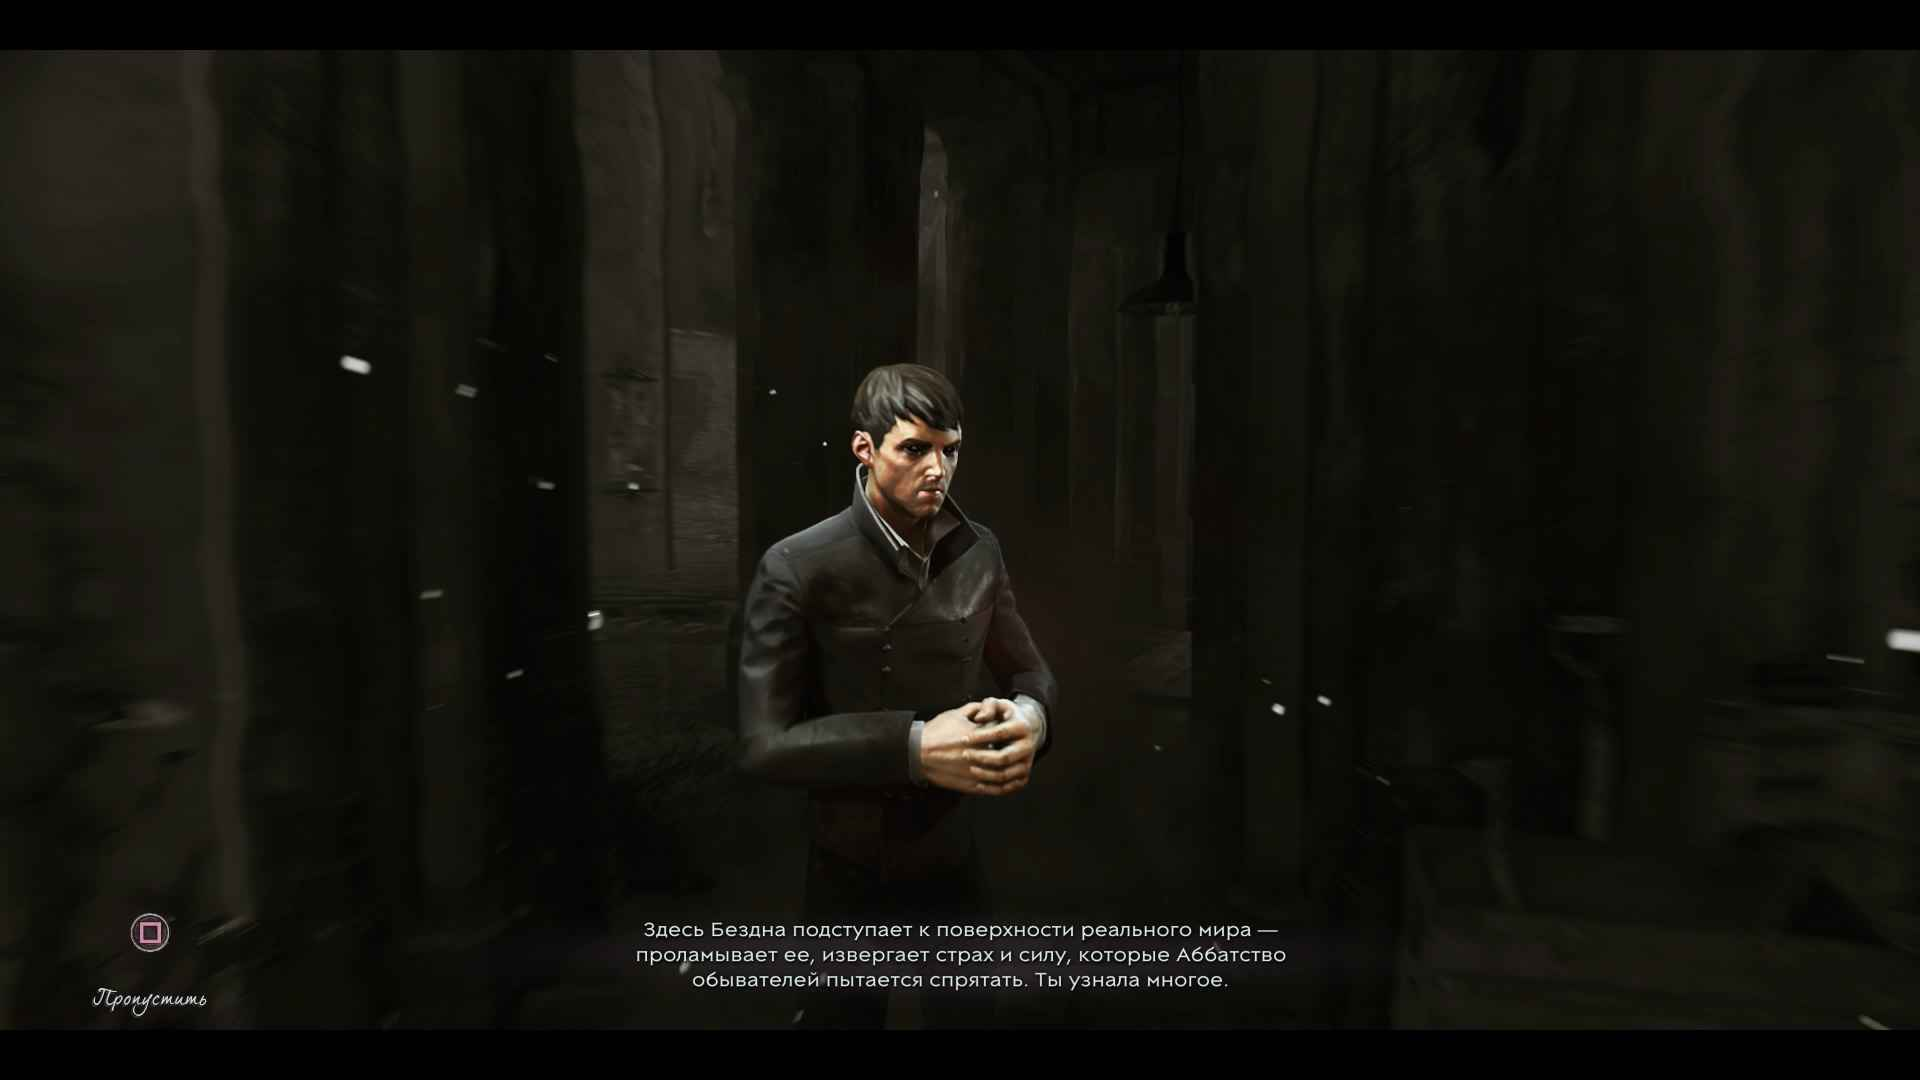 DISHONORED: DEATH OF THE OUTSIDER РЕЦЕНЗИЯ-ДЕРЖИТЕ ЕЕ СЕМЕРО